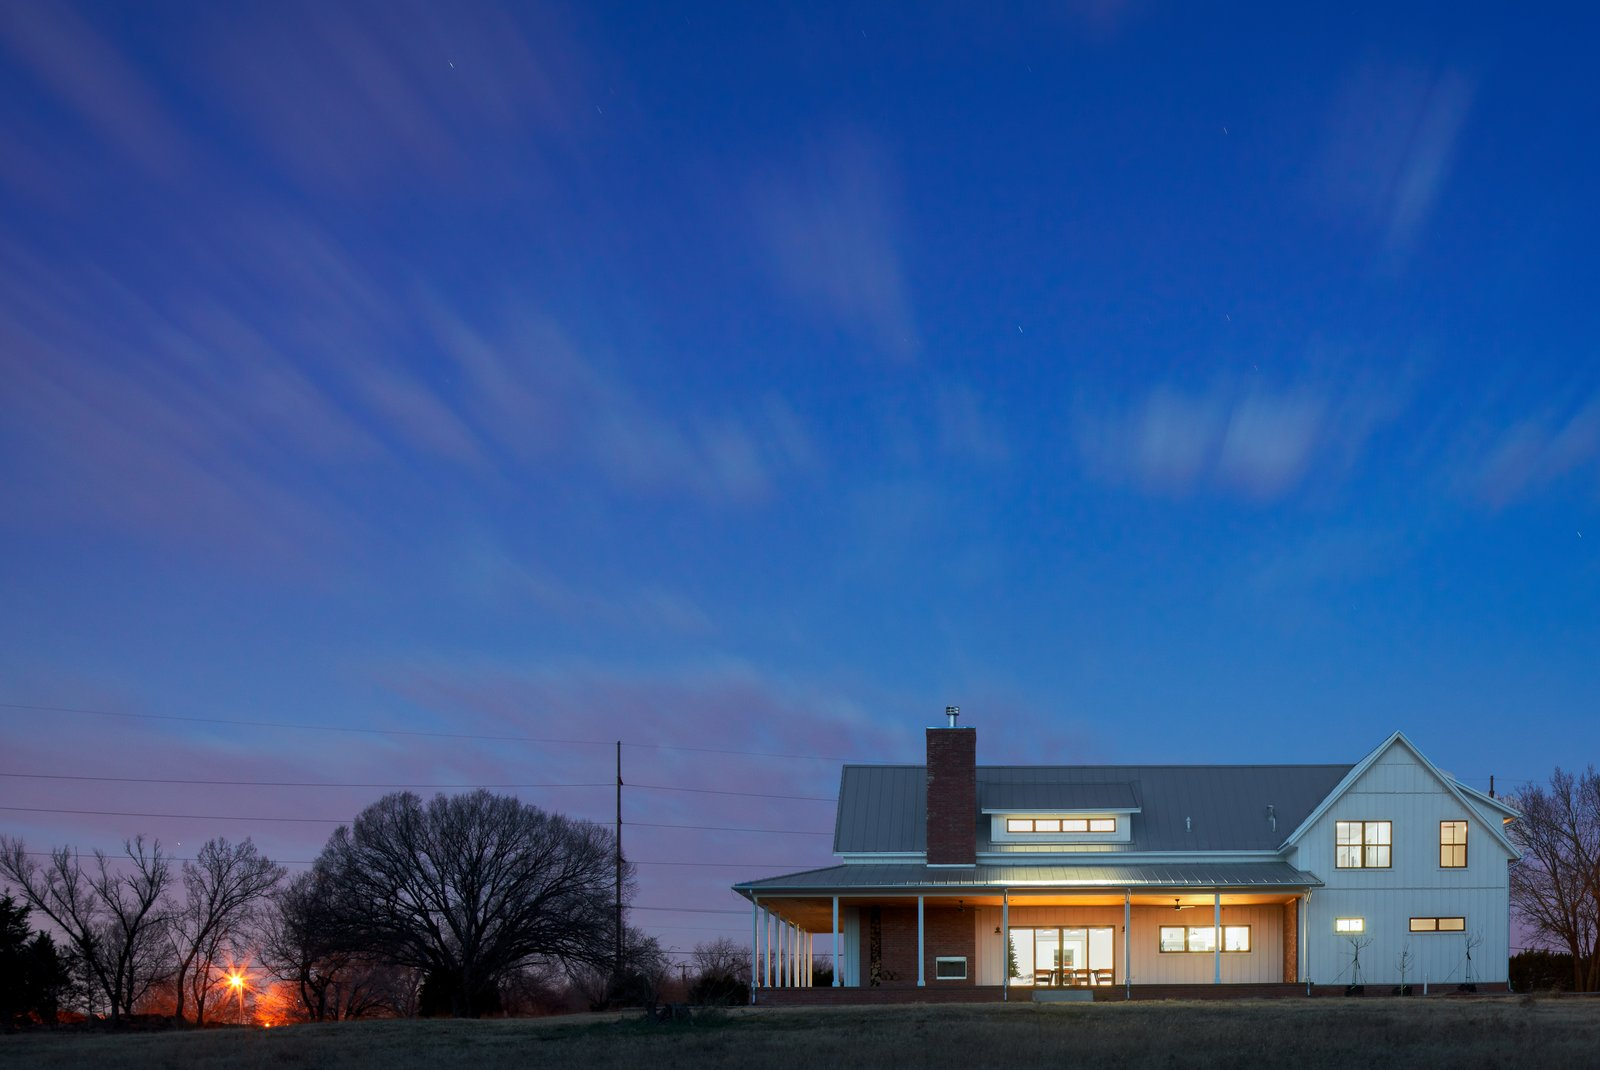 Exterior, House Building Type, Brick Siding Material, Gable RoofLine, Wood Siding Material, and Metal Roof Material Back of the House at Dusk  OKC Farmhouse by Scharbach Workshop